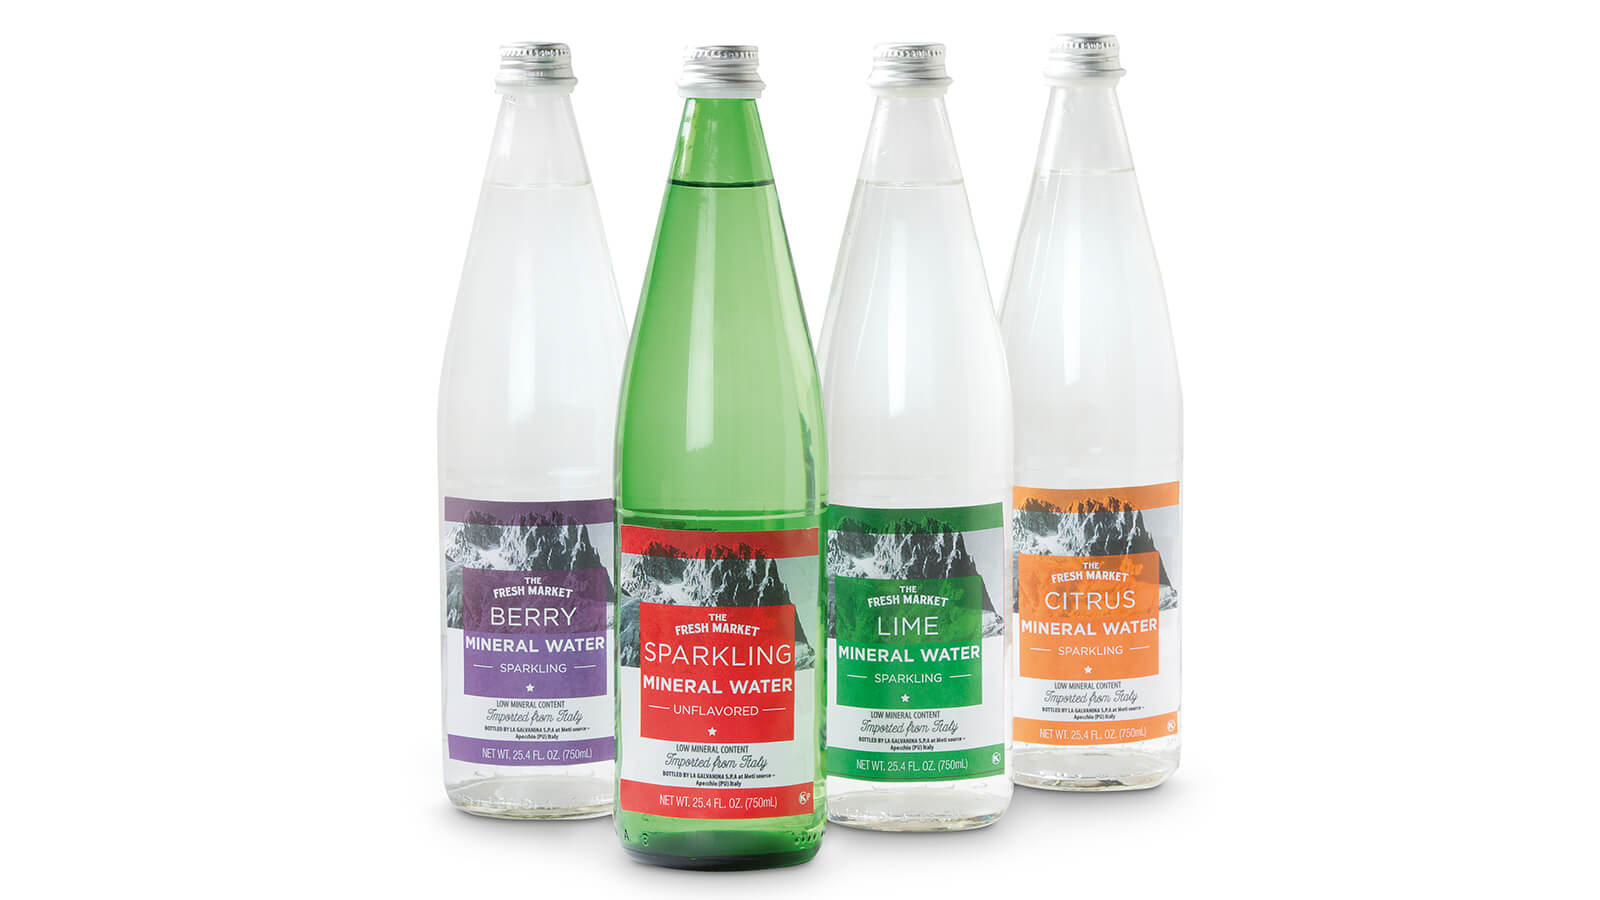 The Fresh Market Sparkling Italian Mineral Water